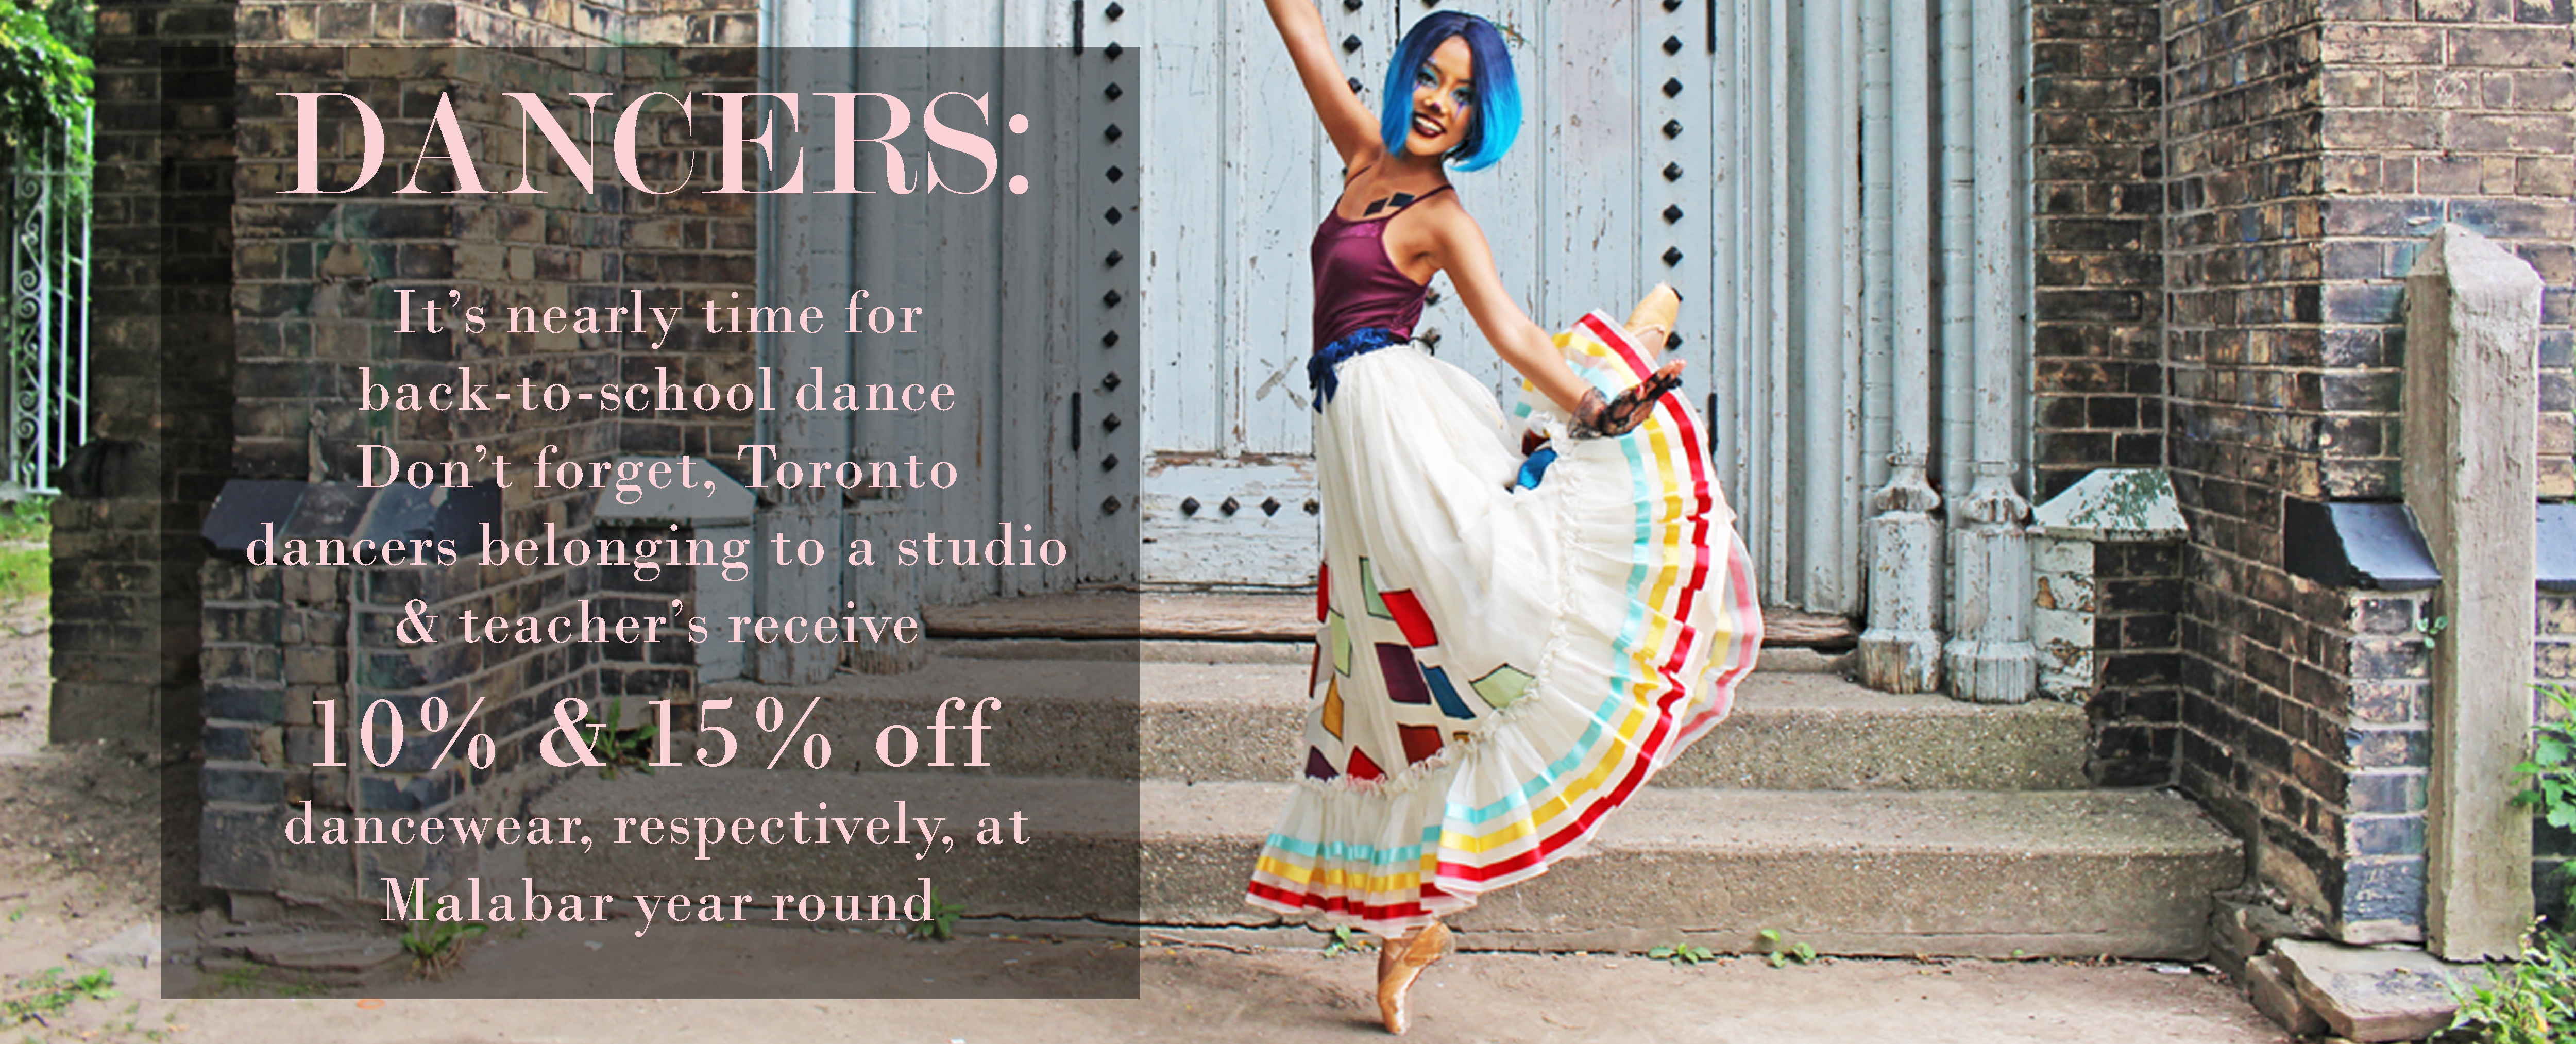 Malabar's Annual Dance Sale is happening at our Toronto location September 8th to 12th and at our Ottawa location August 29th to September 20th!